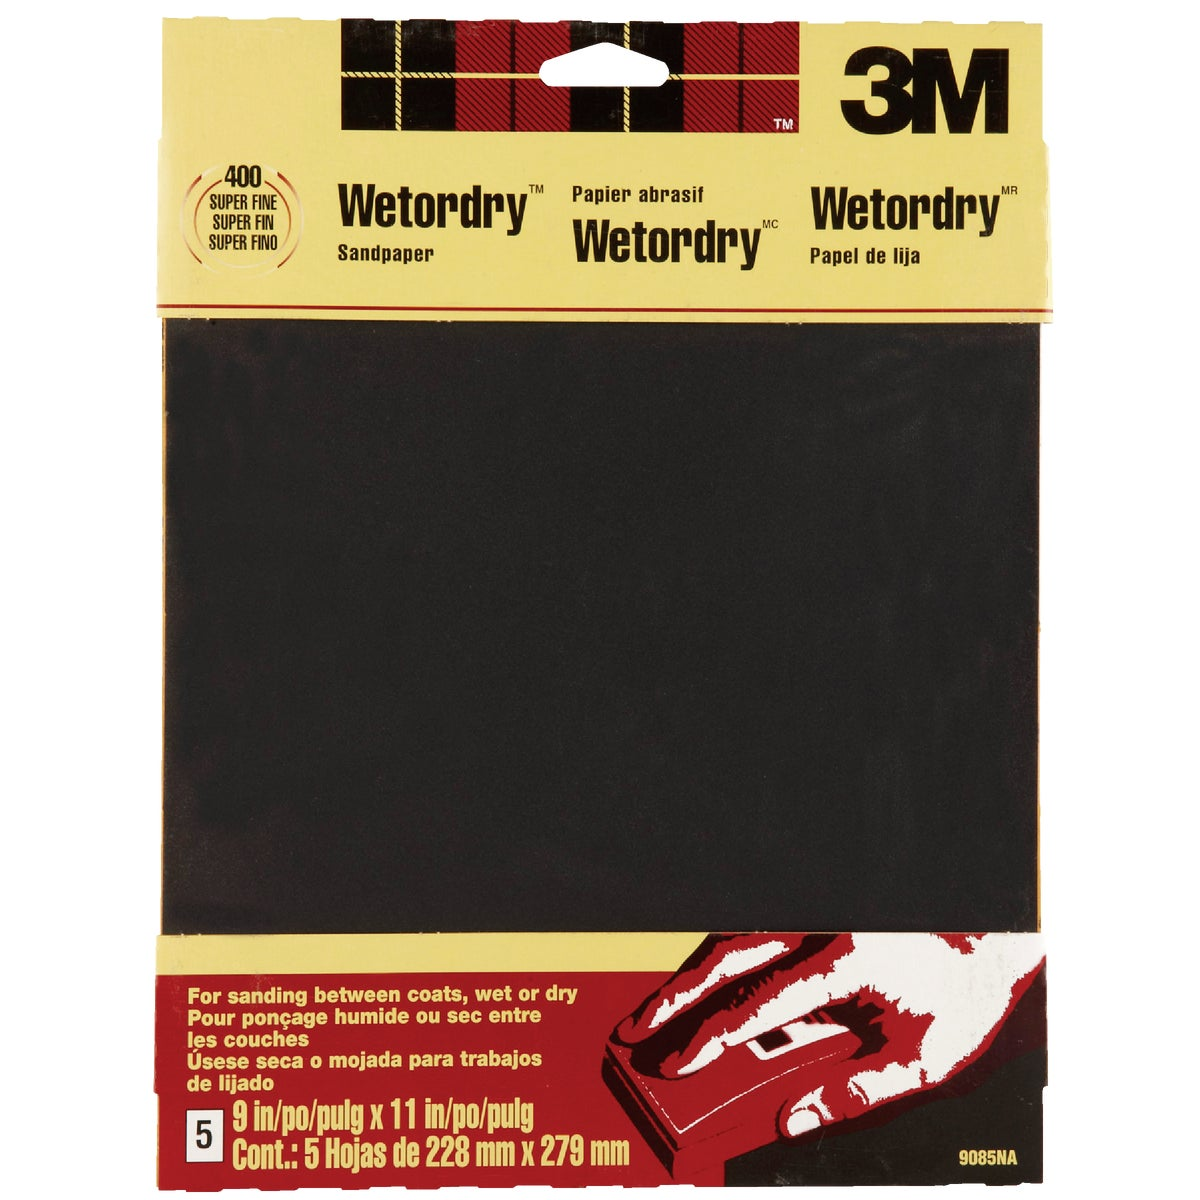 5PK SFINE WET SANDPAPER - 9085 by 3m Co